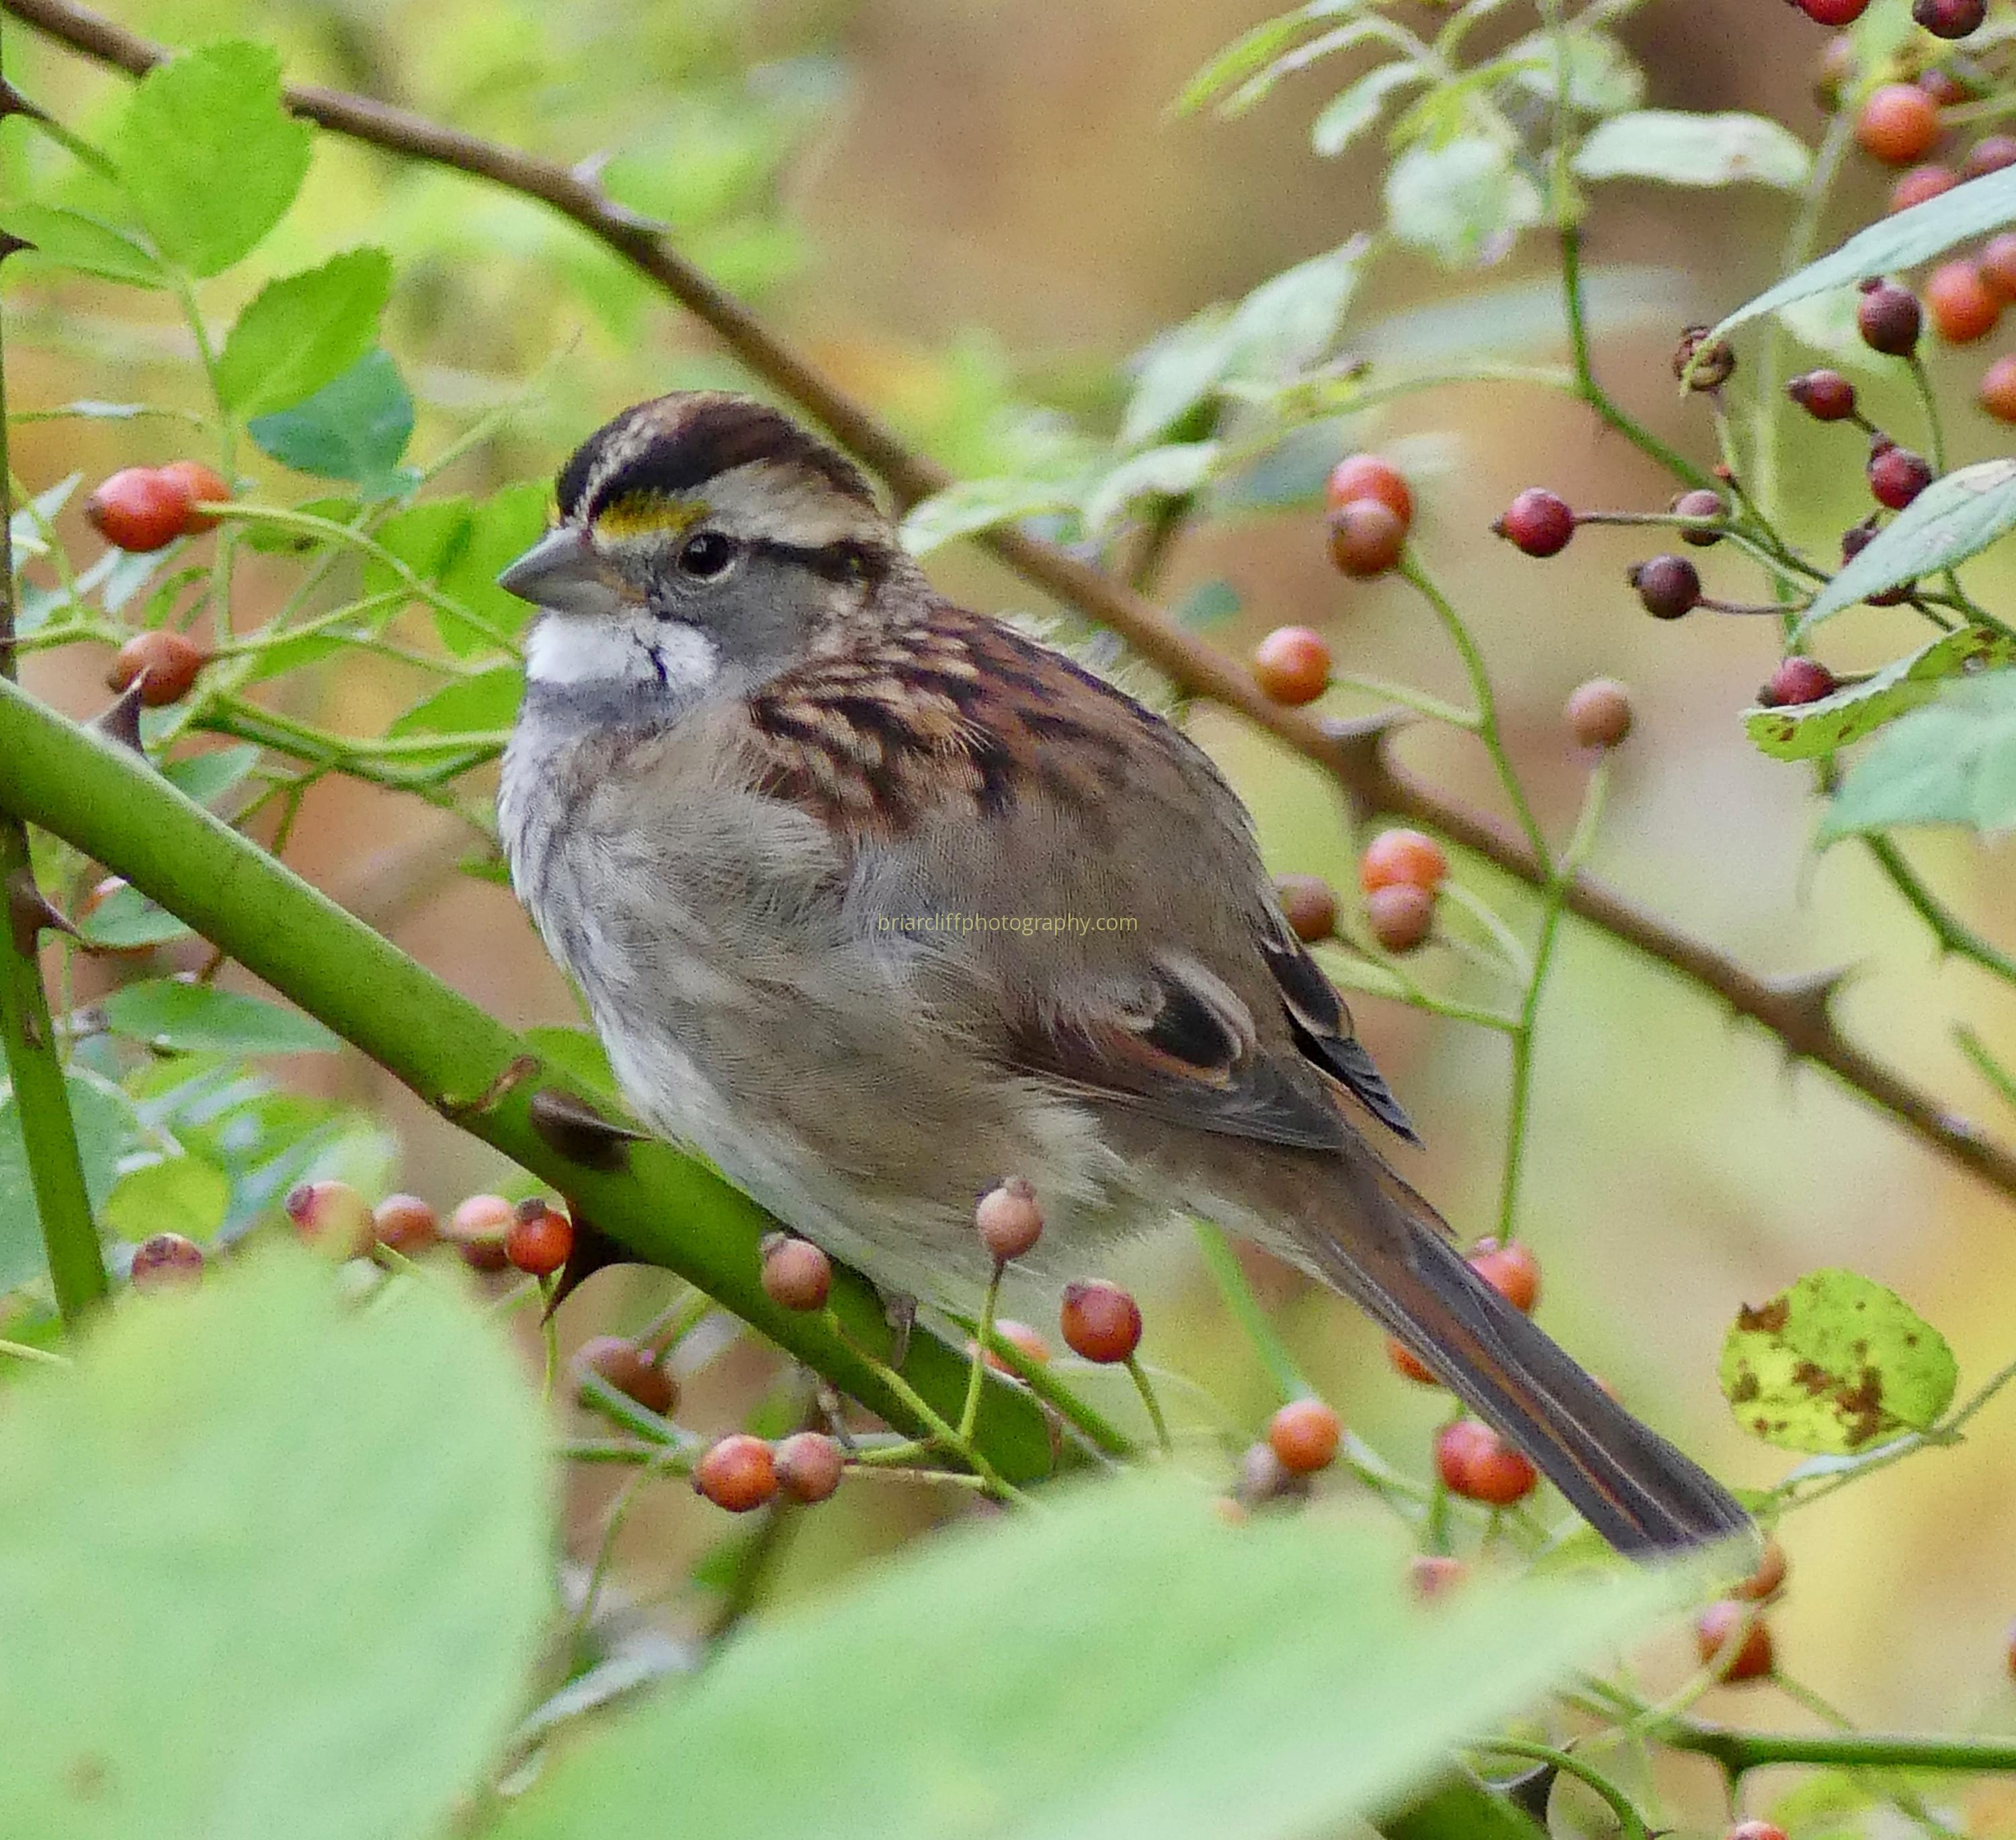 White-throated sparrow with berries